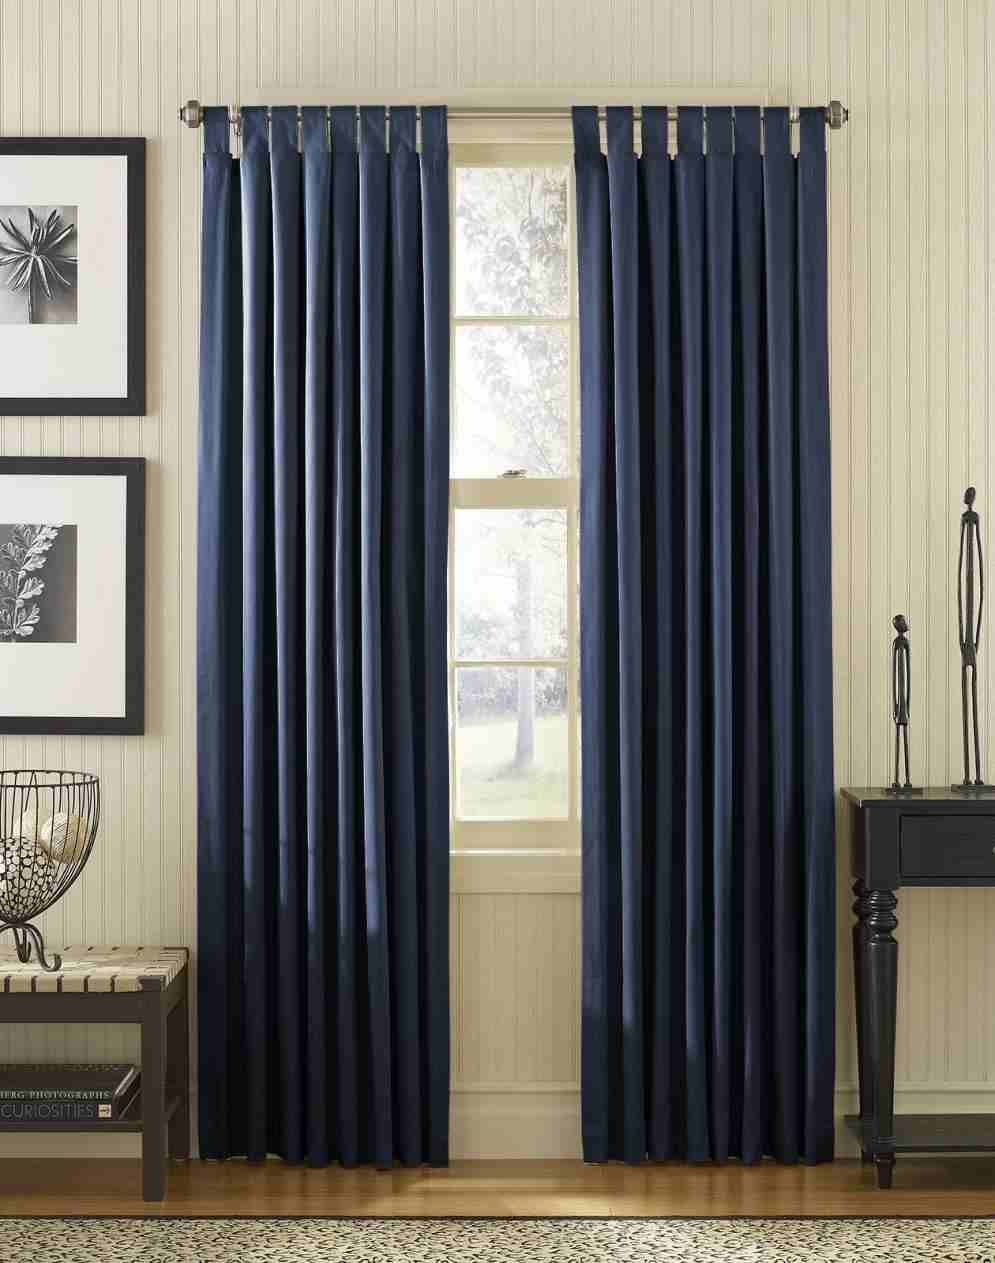 Double Curtains For Bedroom Bedroom Designs Modern Interior Design Ideas Photos Decor For S Curtain Designs For Bedroom Blue Living Room Curtains Living Room Cool bedroom curtains ideas